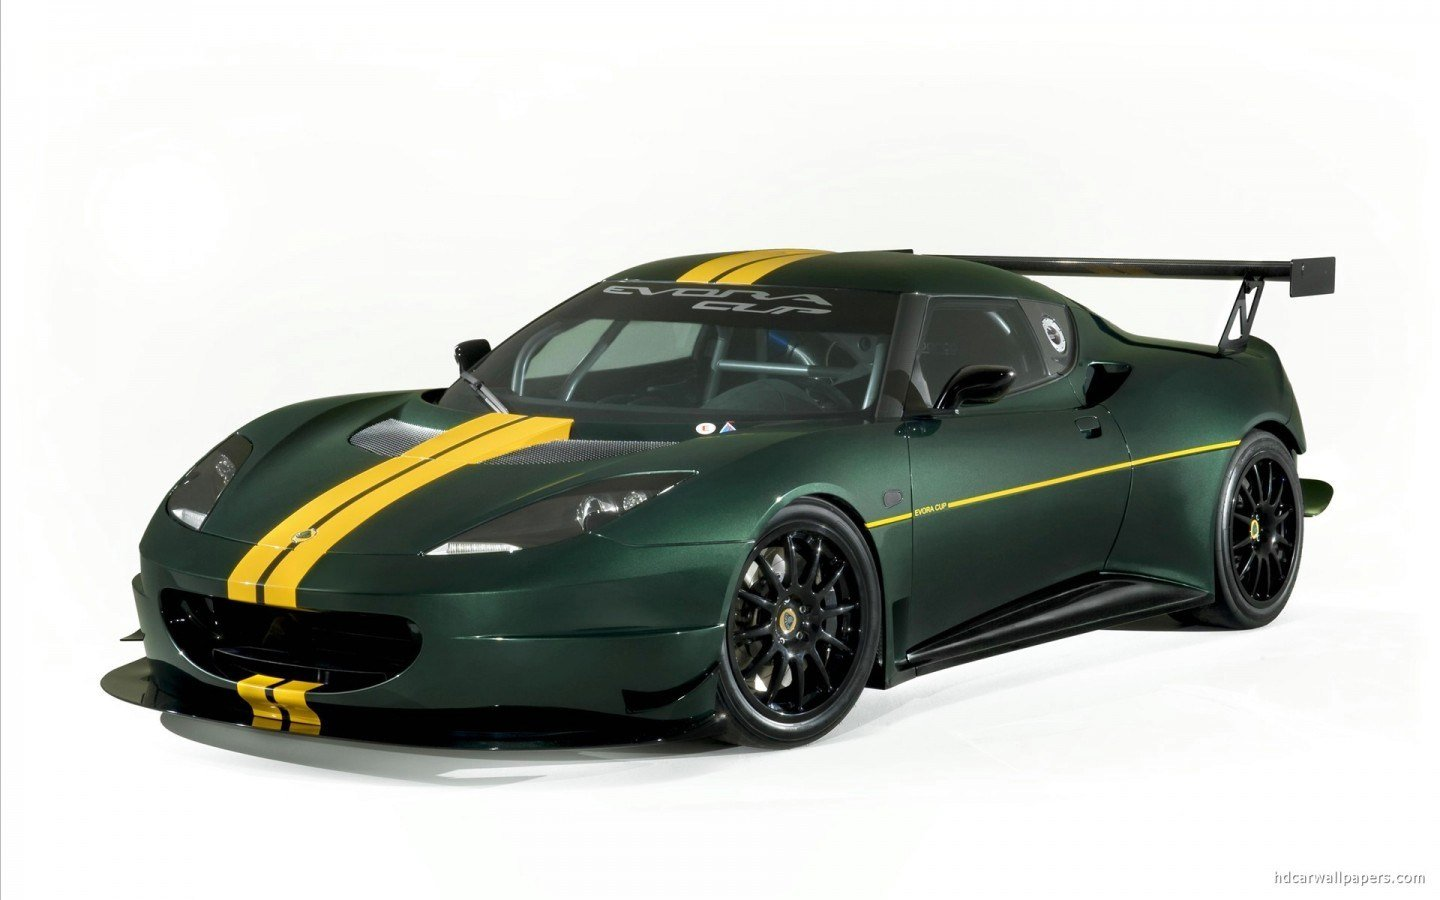 Latest 2010 Lotus Evora Cup Race Car Wallpaper Hd Car Free Download